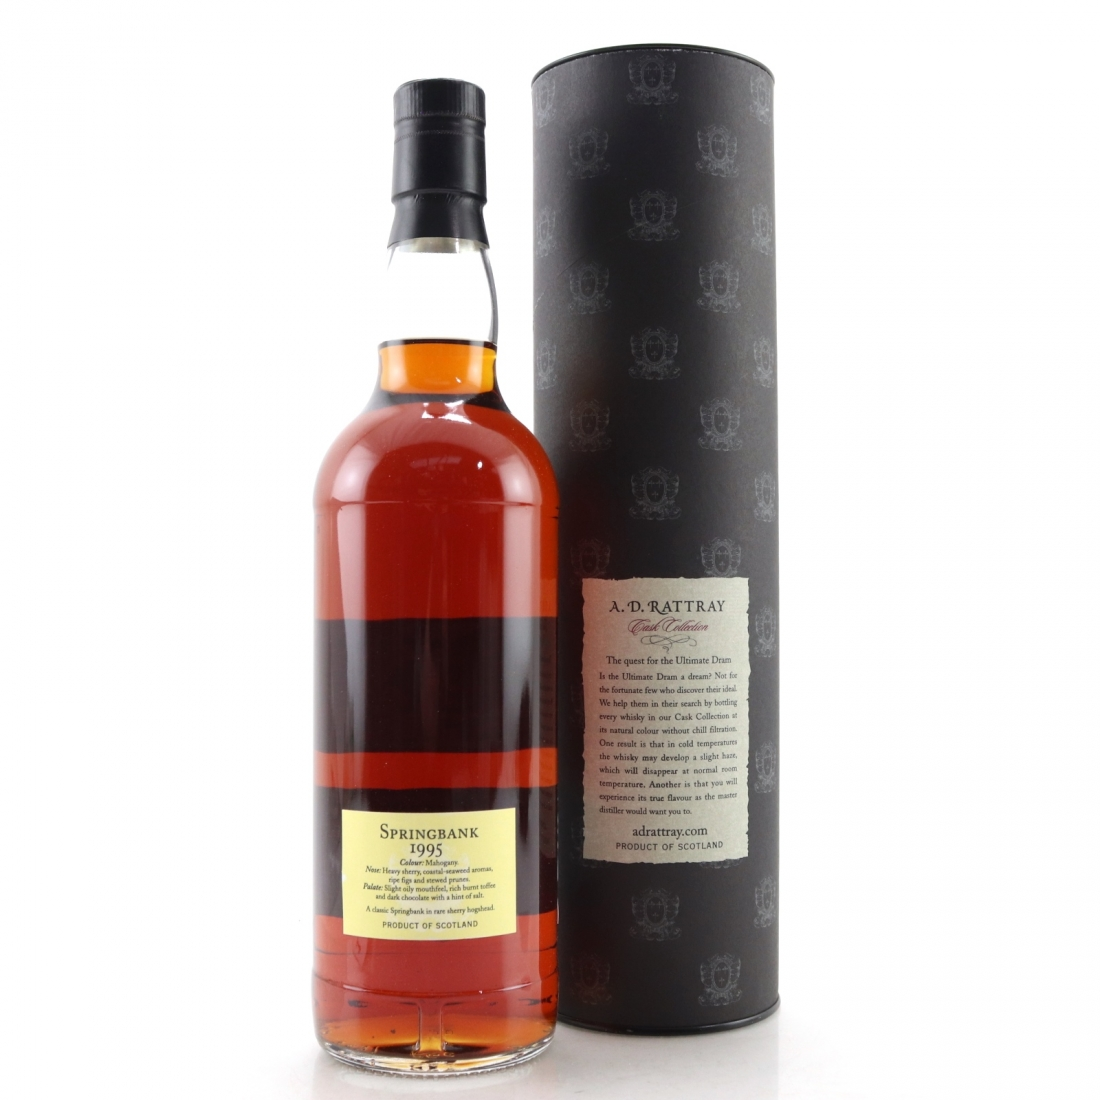 Springbank 1995 A.D. Rattray 15 Year Old / Alba Import, Germany